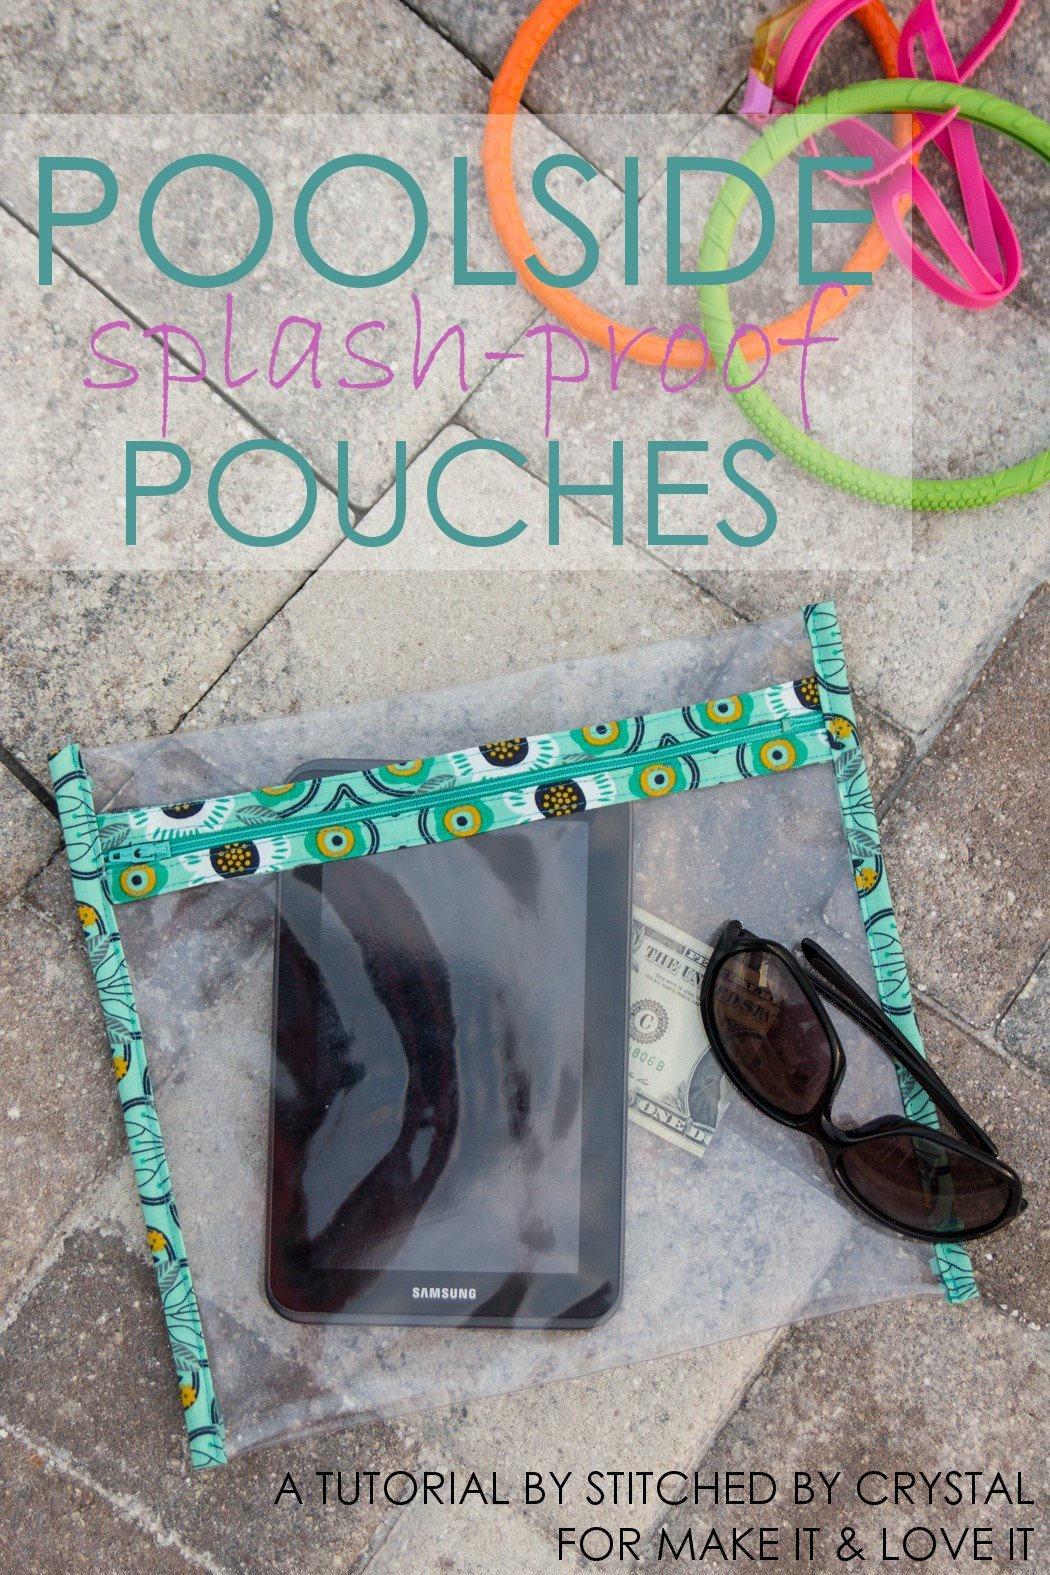 DIY Poolside Splash-Proof Pouches